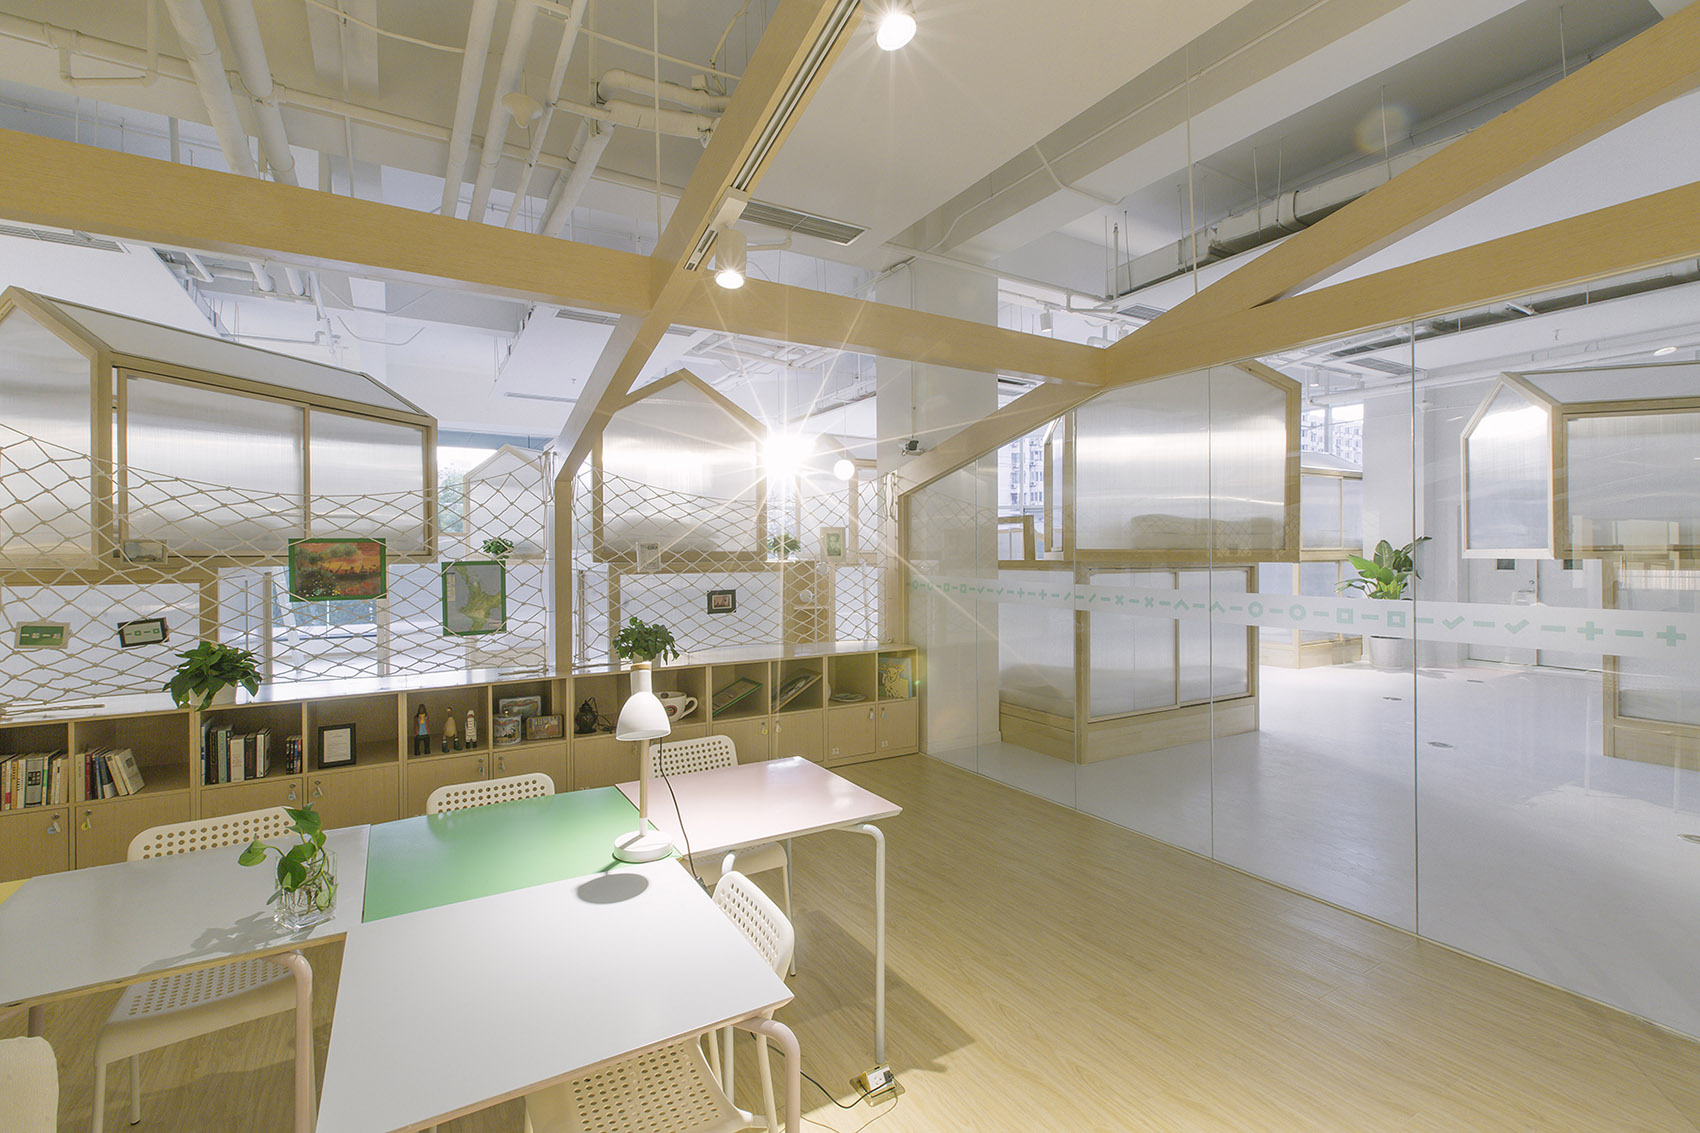 6-Together-Hostel-indoor-camping-space-for-youth-By-Jacobsen-Arquitetura